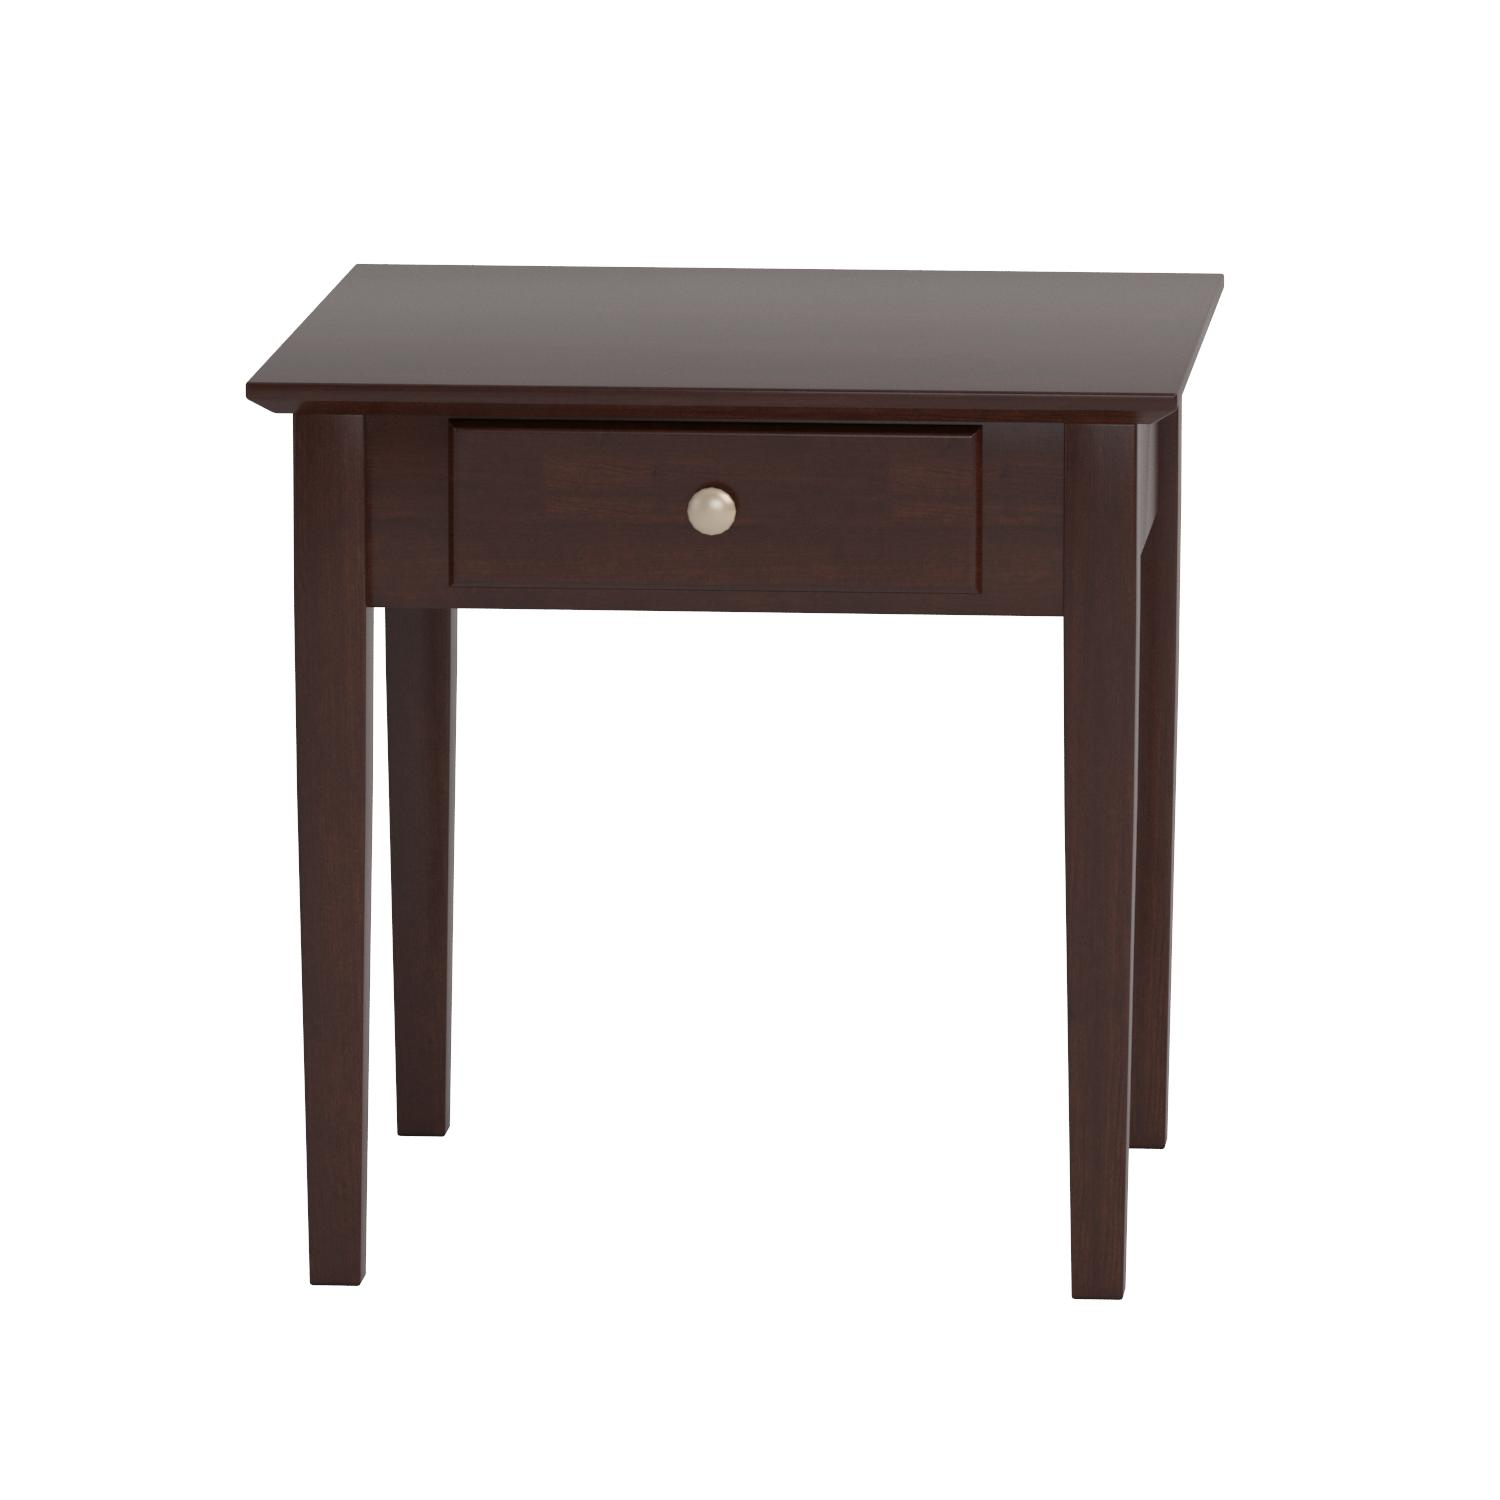 End table with drawer - Amazon Com Winsome Wood Rochester End Table With One Drawer Shaker Kitchen Dining